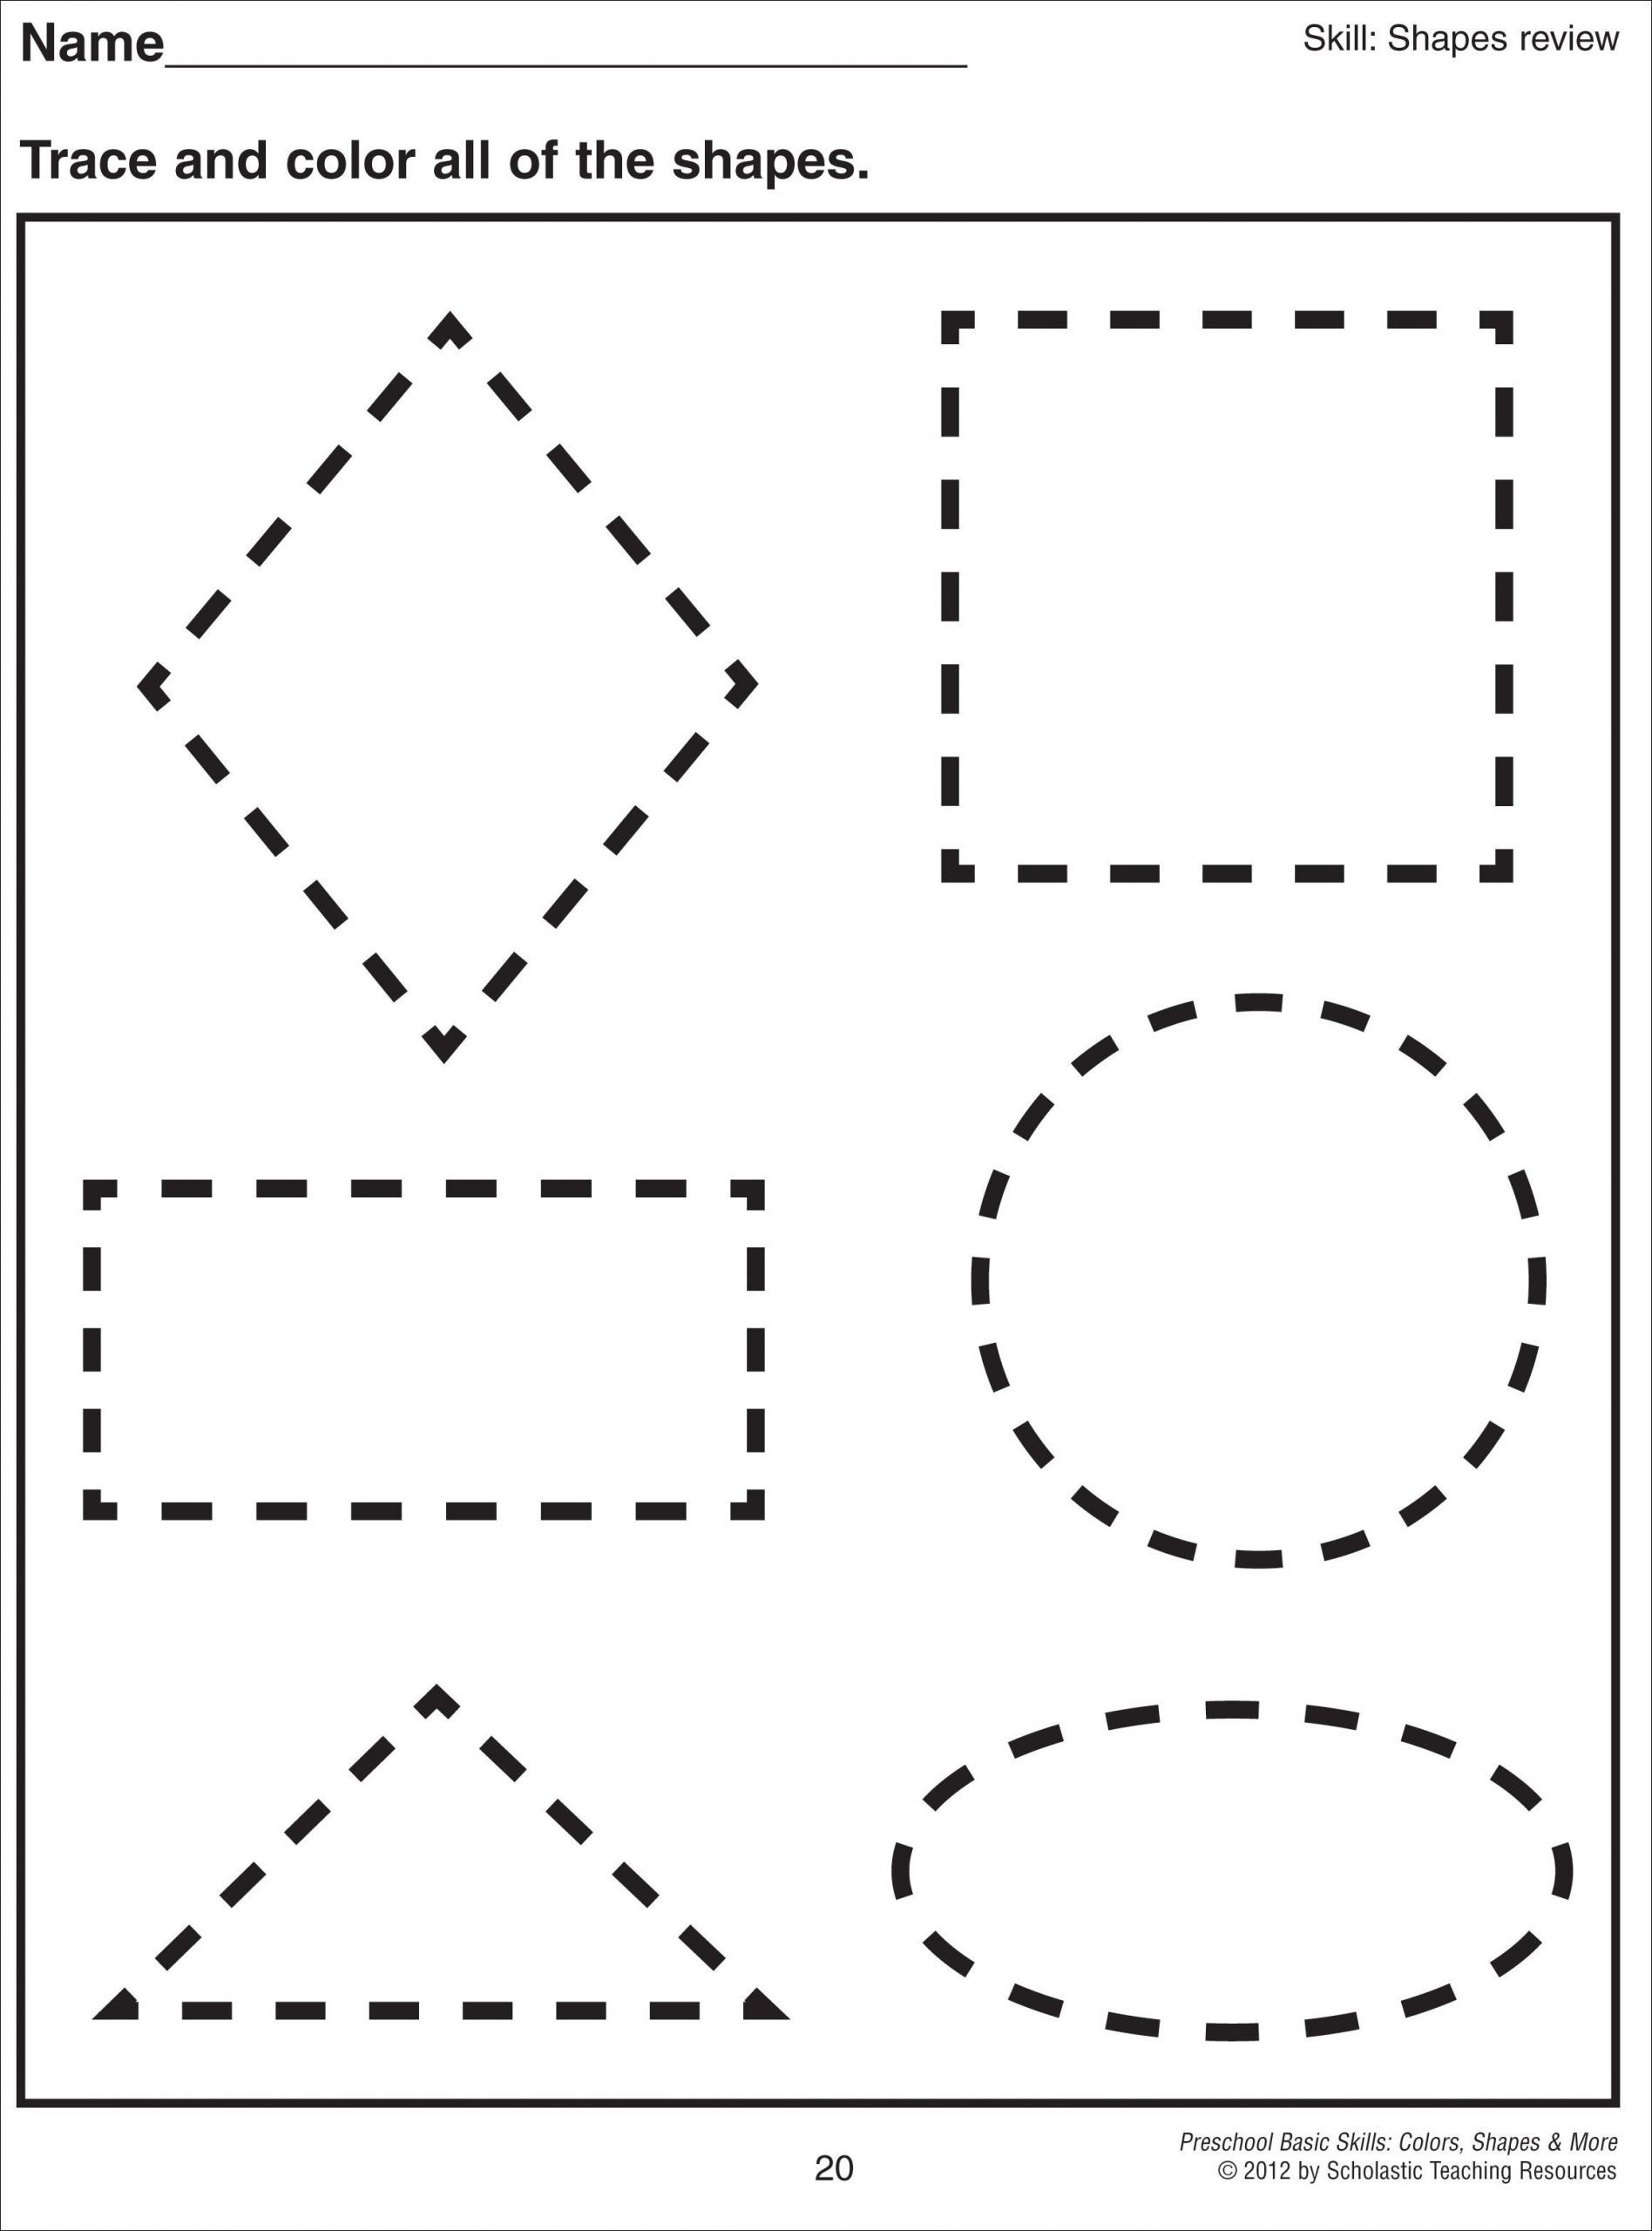 Printable Cutting Worksheets for Preschoolers Multiplication Mat Play Teacher Worksheets Cutting Shapes